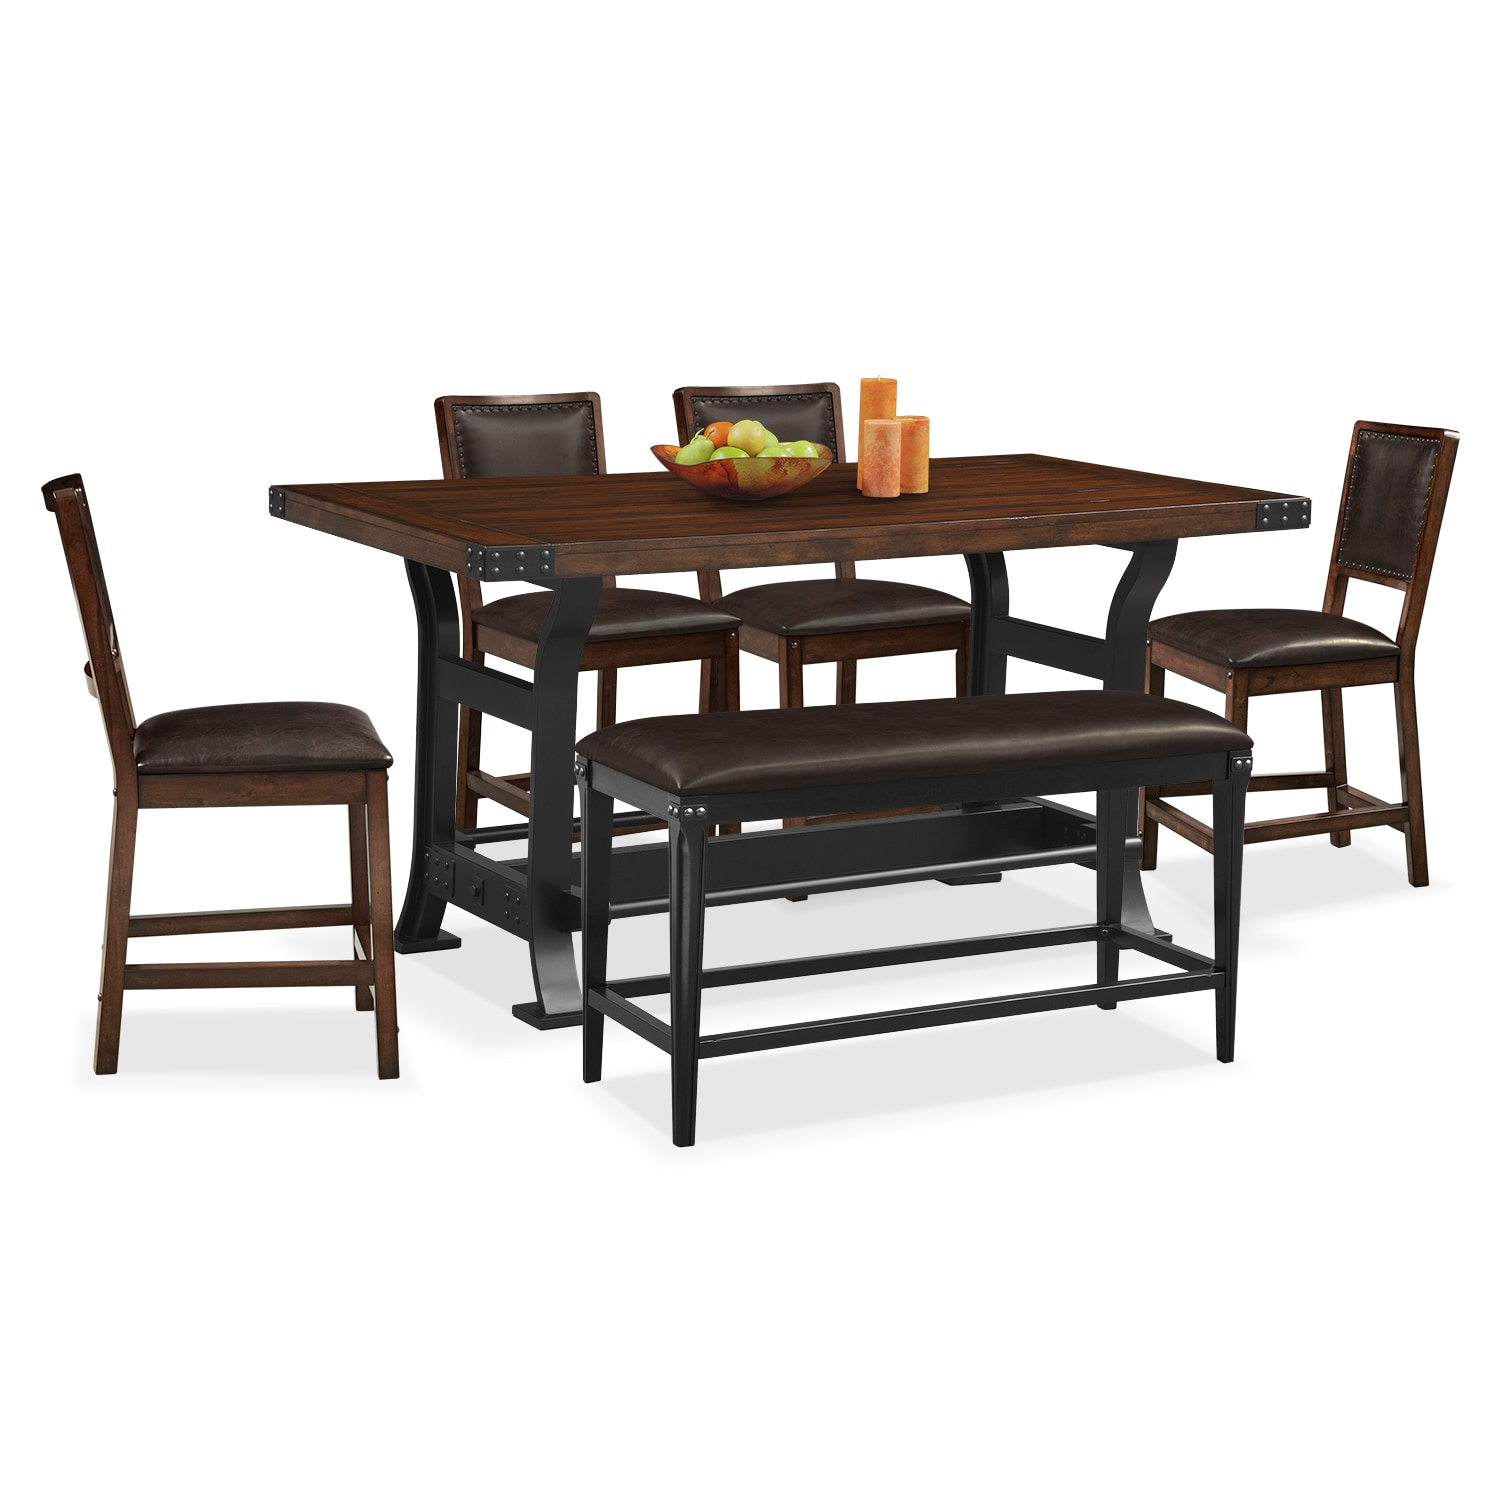 Dining Room Furniture   Newcastle Counter Height 6 Pc. Counter Height  Dining Room With